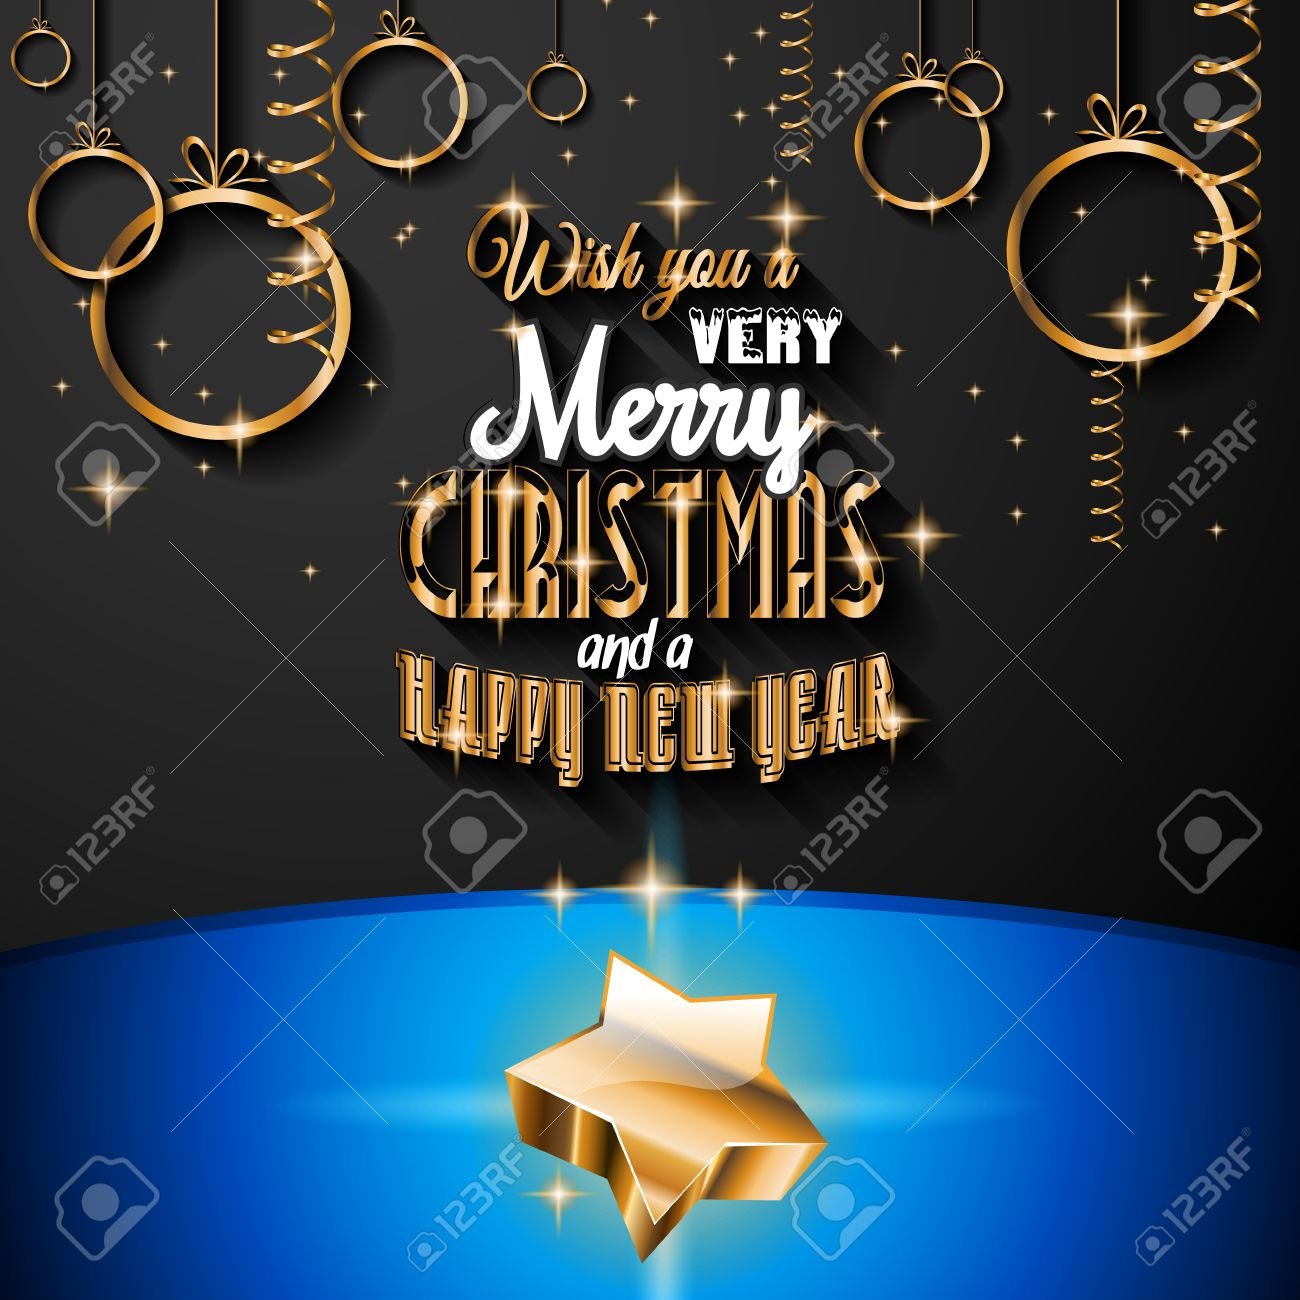 2015 new year and happy christmas background for your flyers 2015 new year and happy christmas background for your flyers invitation party posters kristyandbryce Choice Image